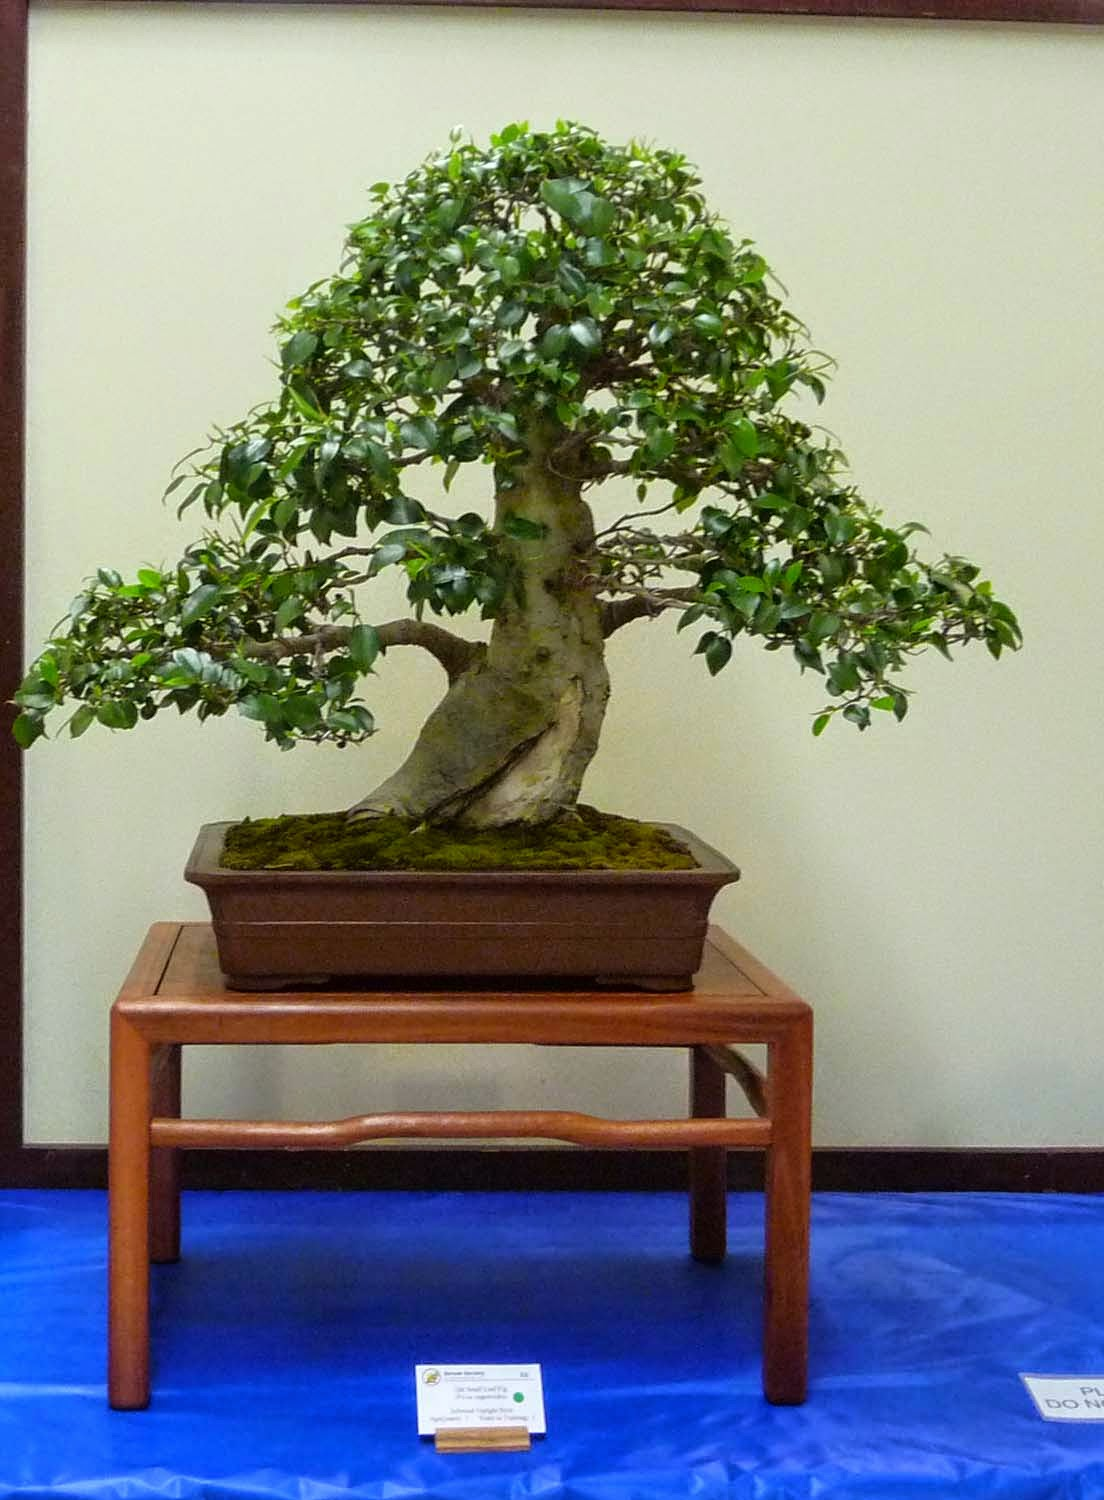 Bonsai Amp Pottery Post 169 Bonsai Society Of Queensland Exhibition